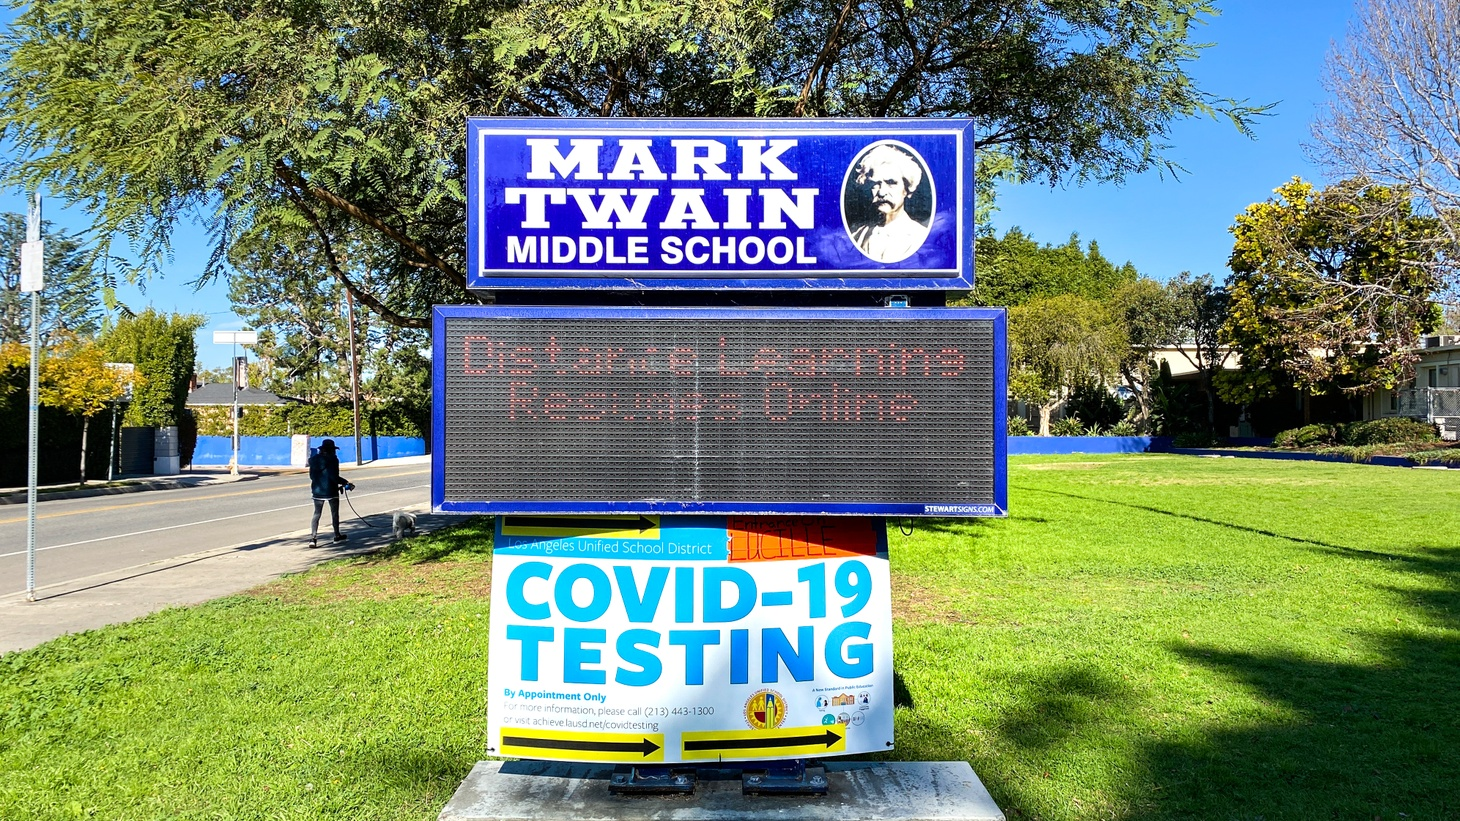 Mark Twain Middle School in Mar Vista, Los Angeles offers COVID-19 testing. The digital board in front of the campus says distance learning resources are online. February 2, 2021.